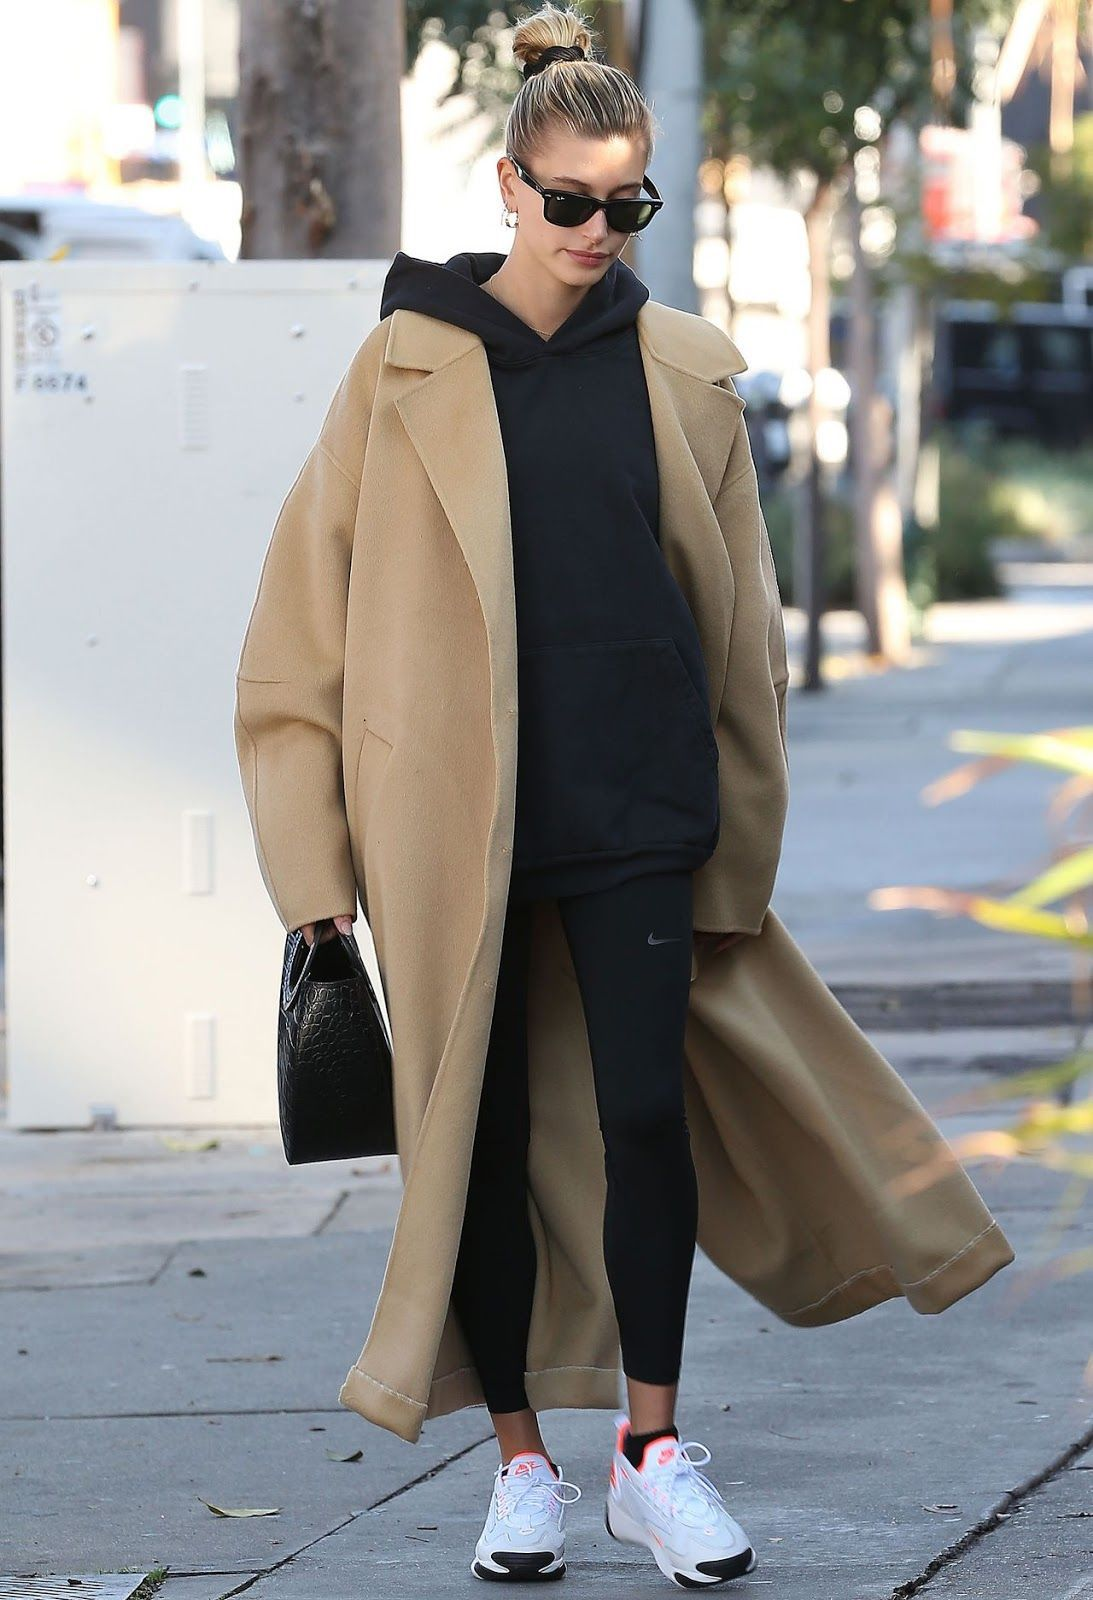 Shopping | Style Inspiration: Chic Sweatsuits for Fall Days